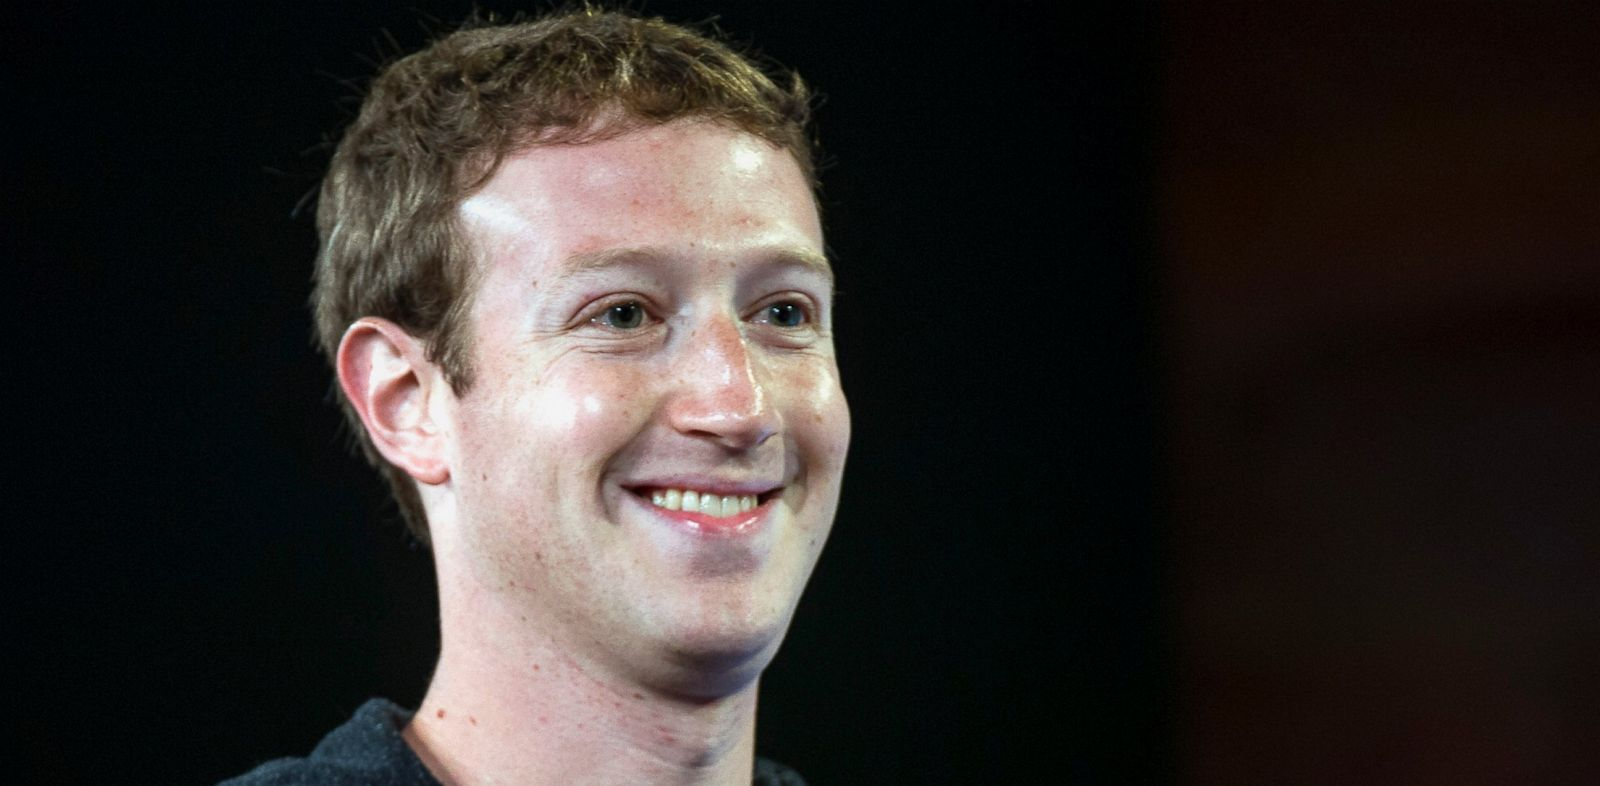 PHOTO: Mark Zuckerberg, chief executive officer of Facebook Inc., smiles while speaking during an event at the companys headquarters in Menlo Park, Calif., June 20, 2013.